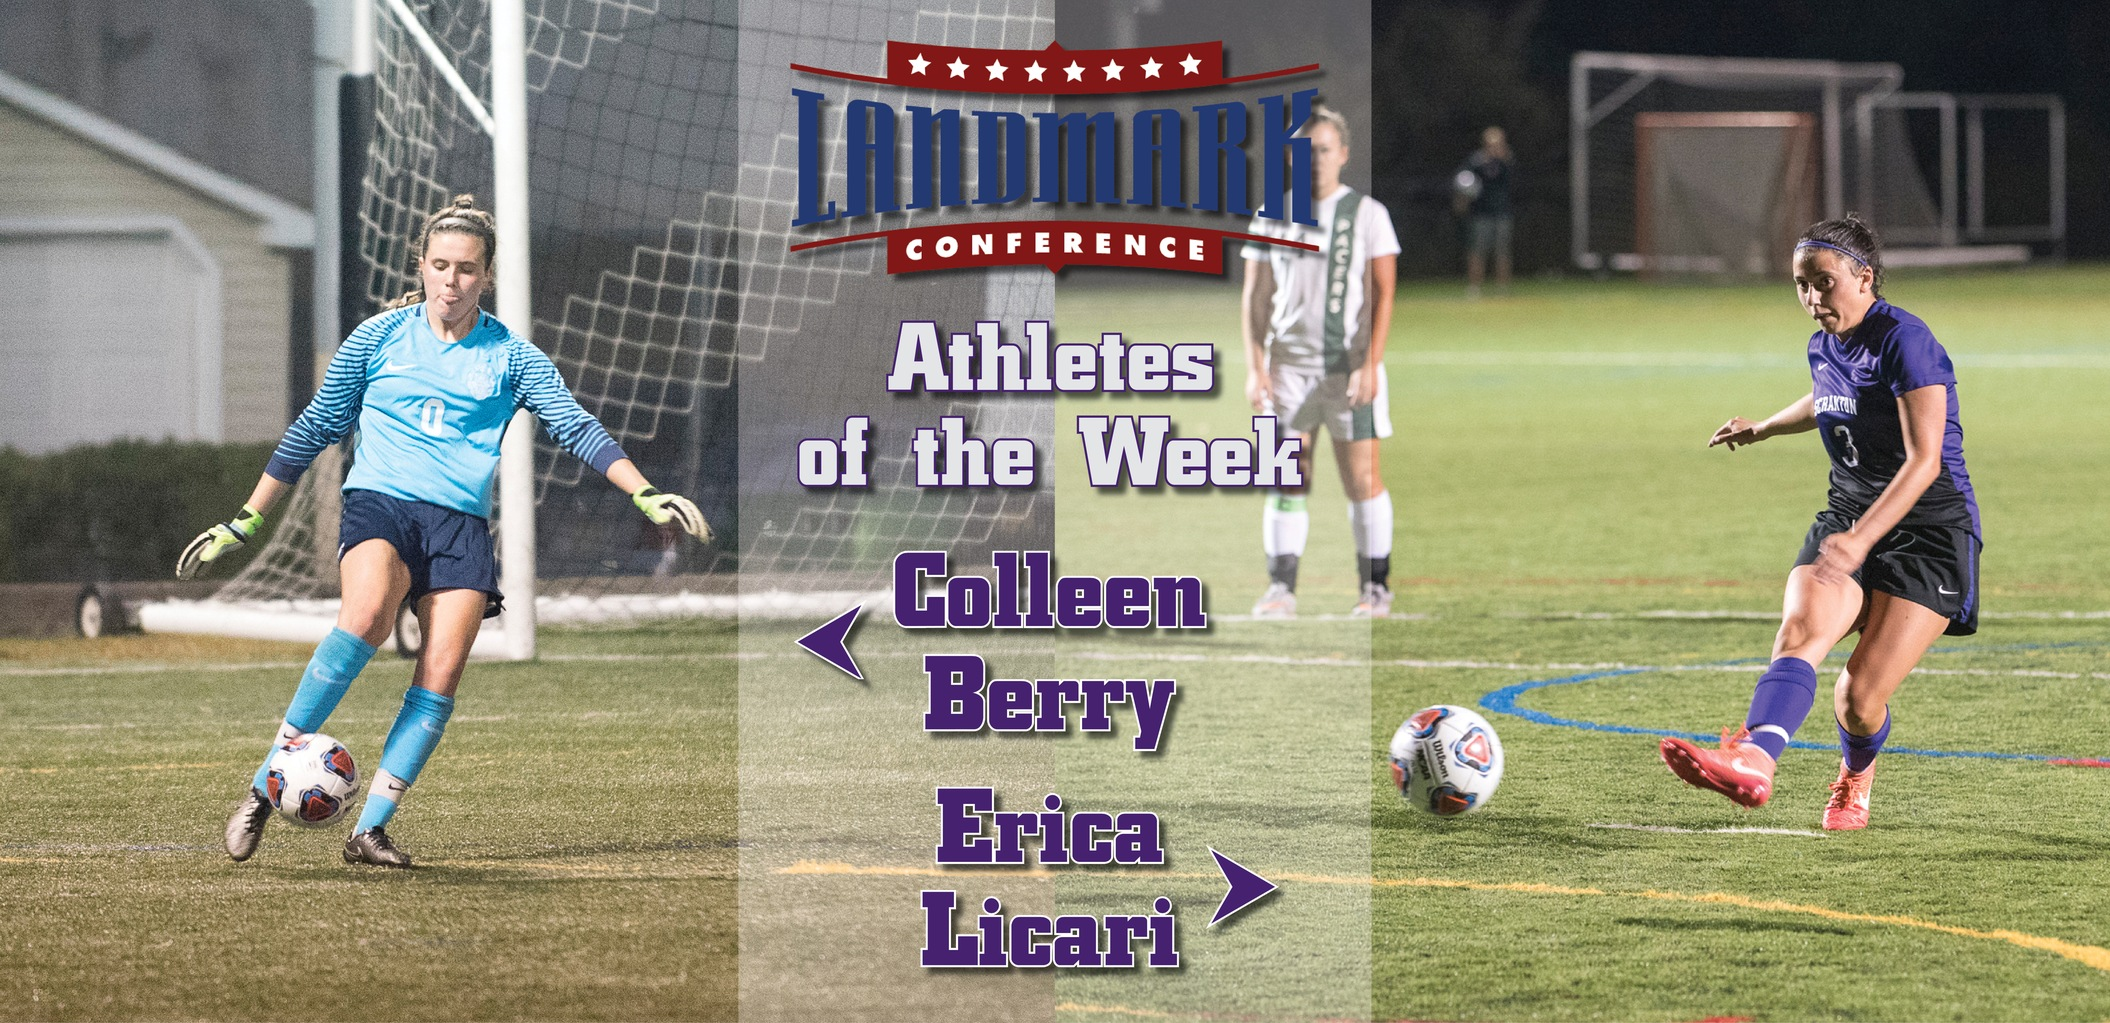 Berry, Licari Earn Landmark Conference Athlete of the Week Awards